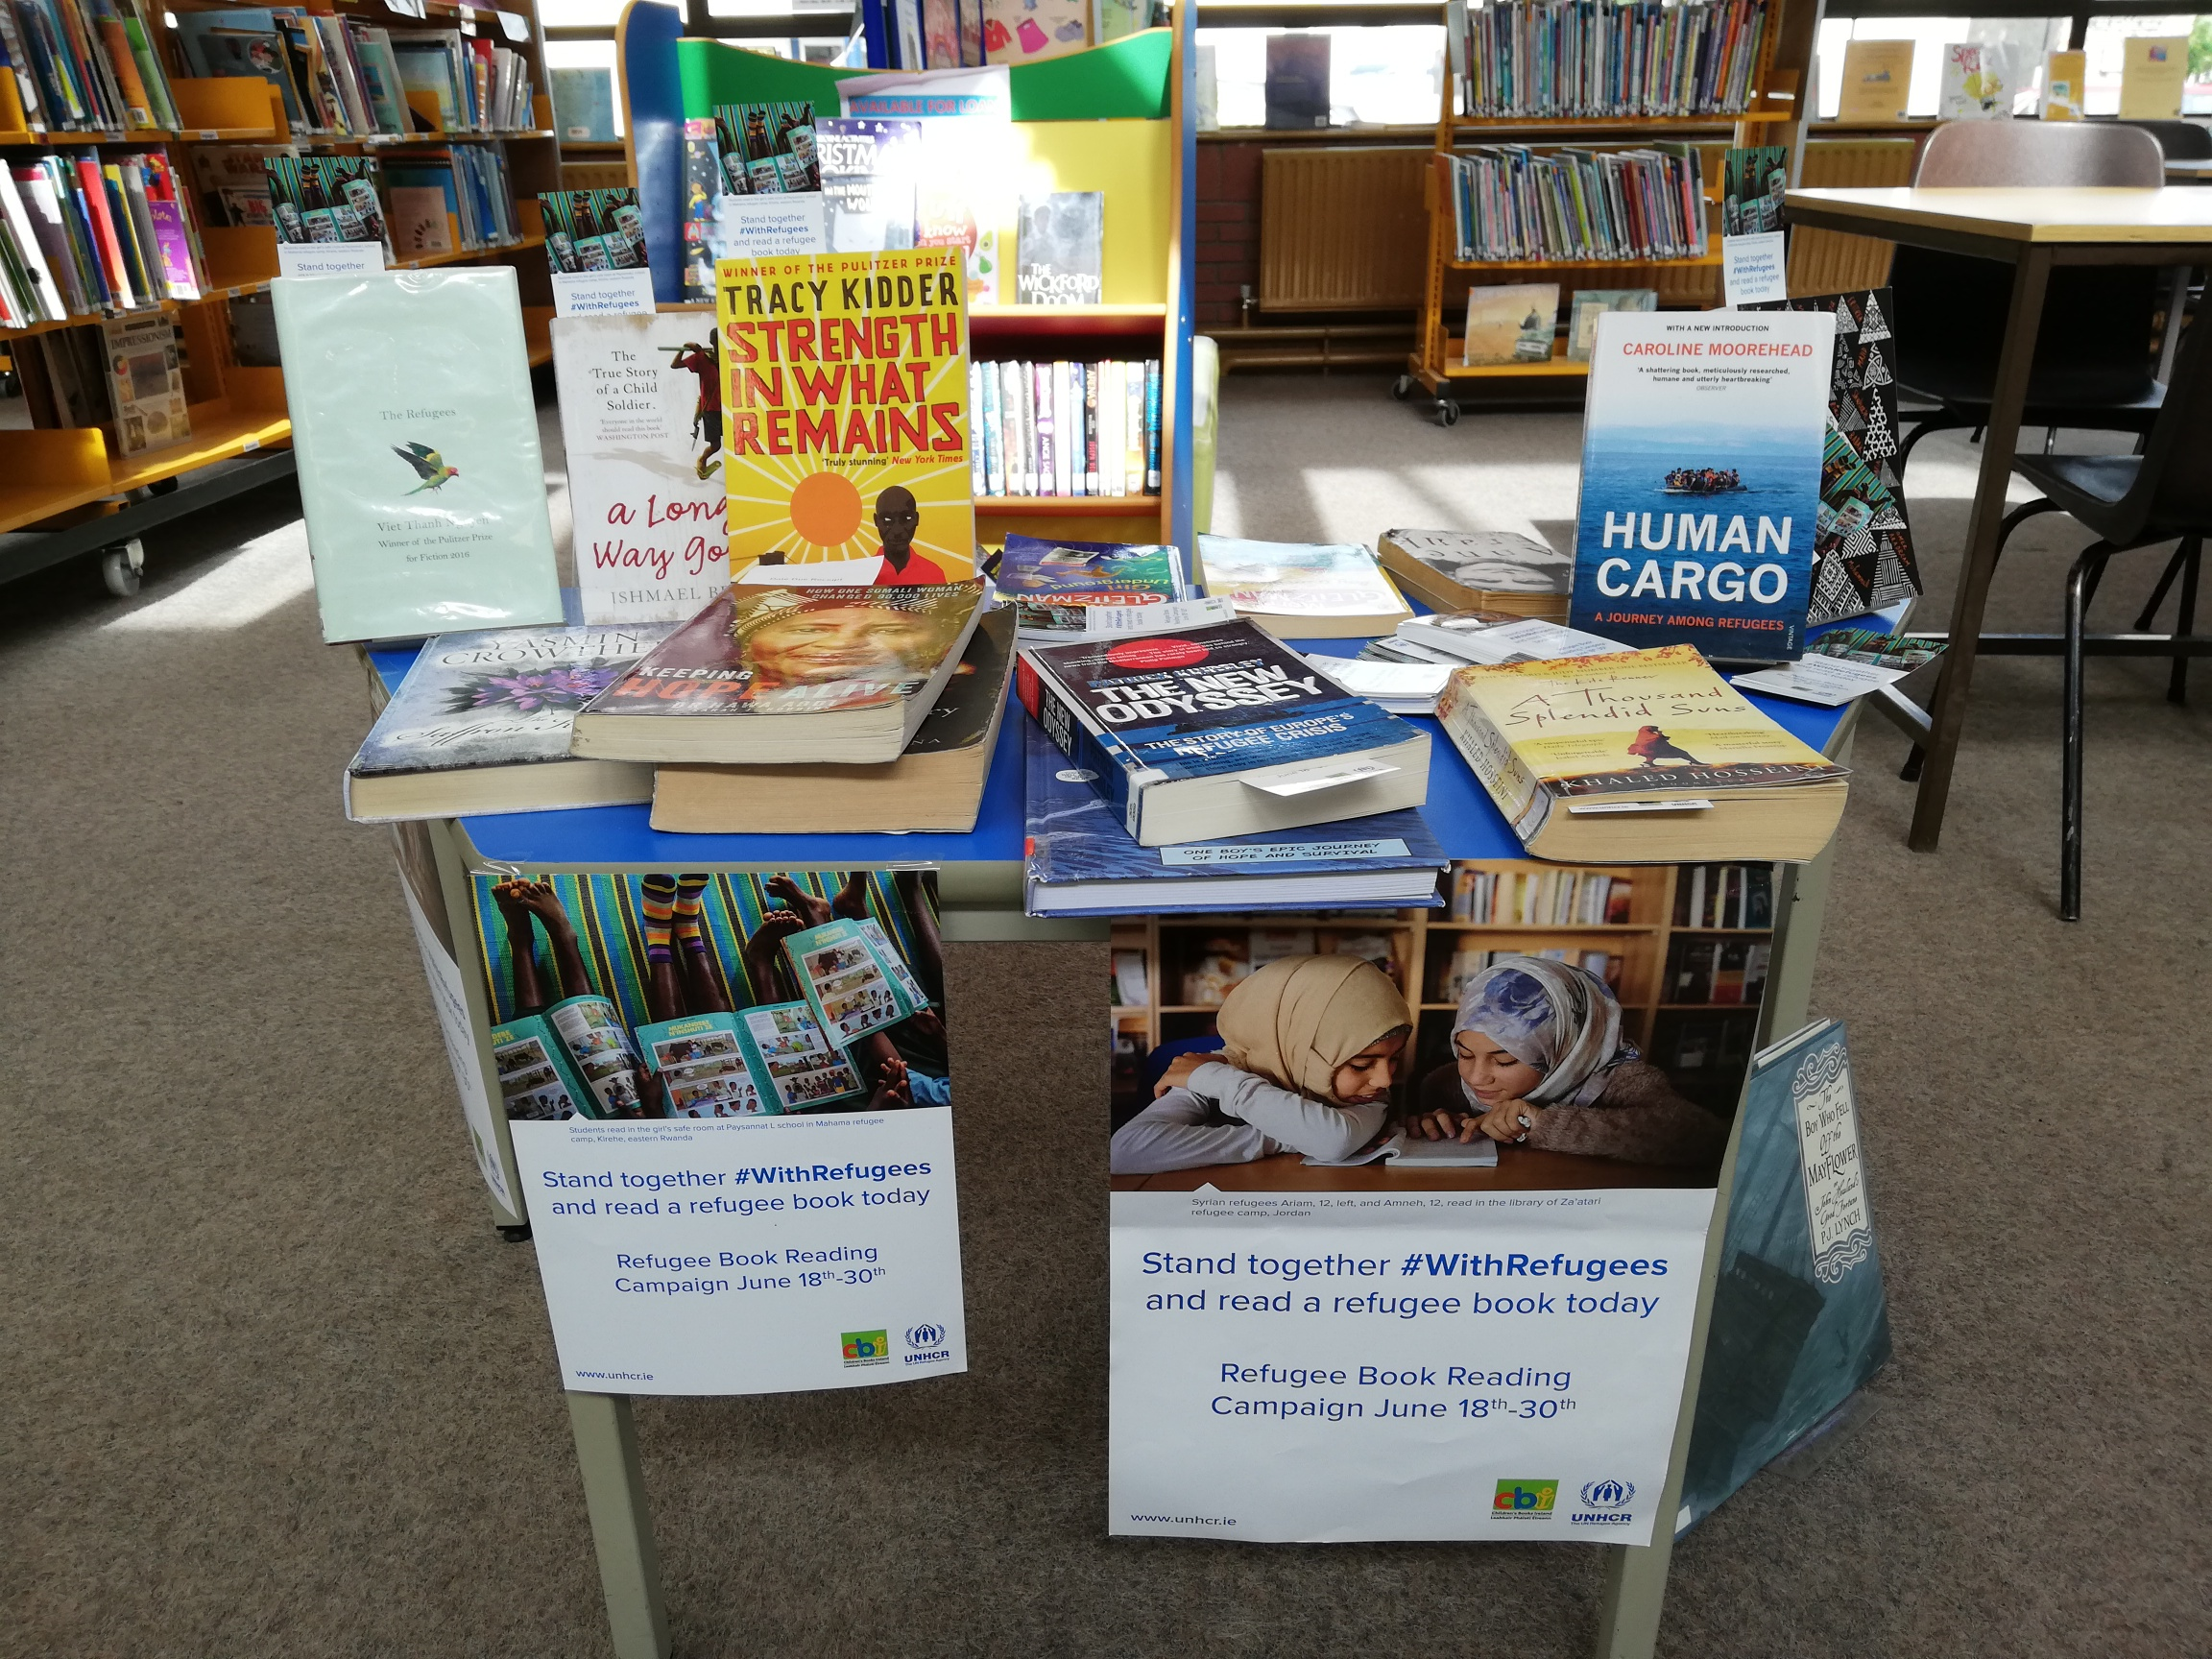 UNHCR Refugee Book Reading Campaign  And Tipperary Libraries